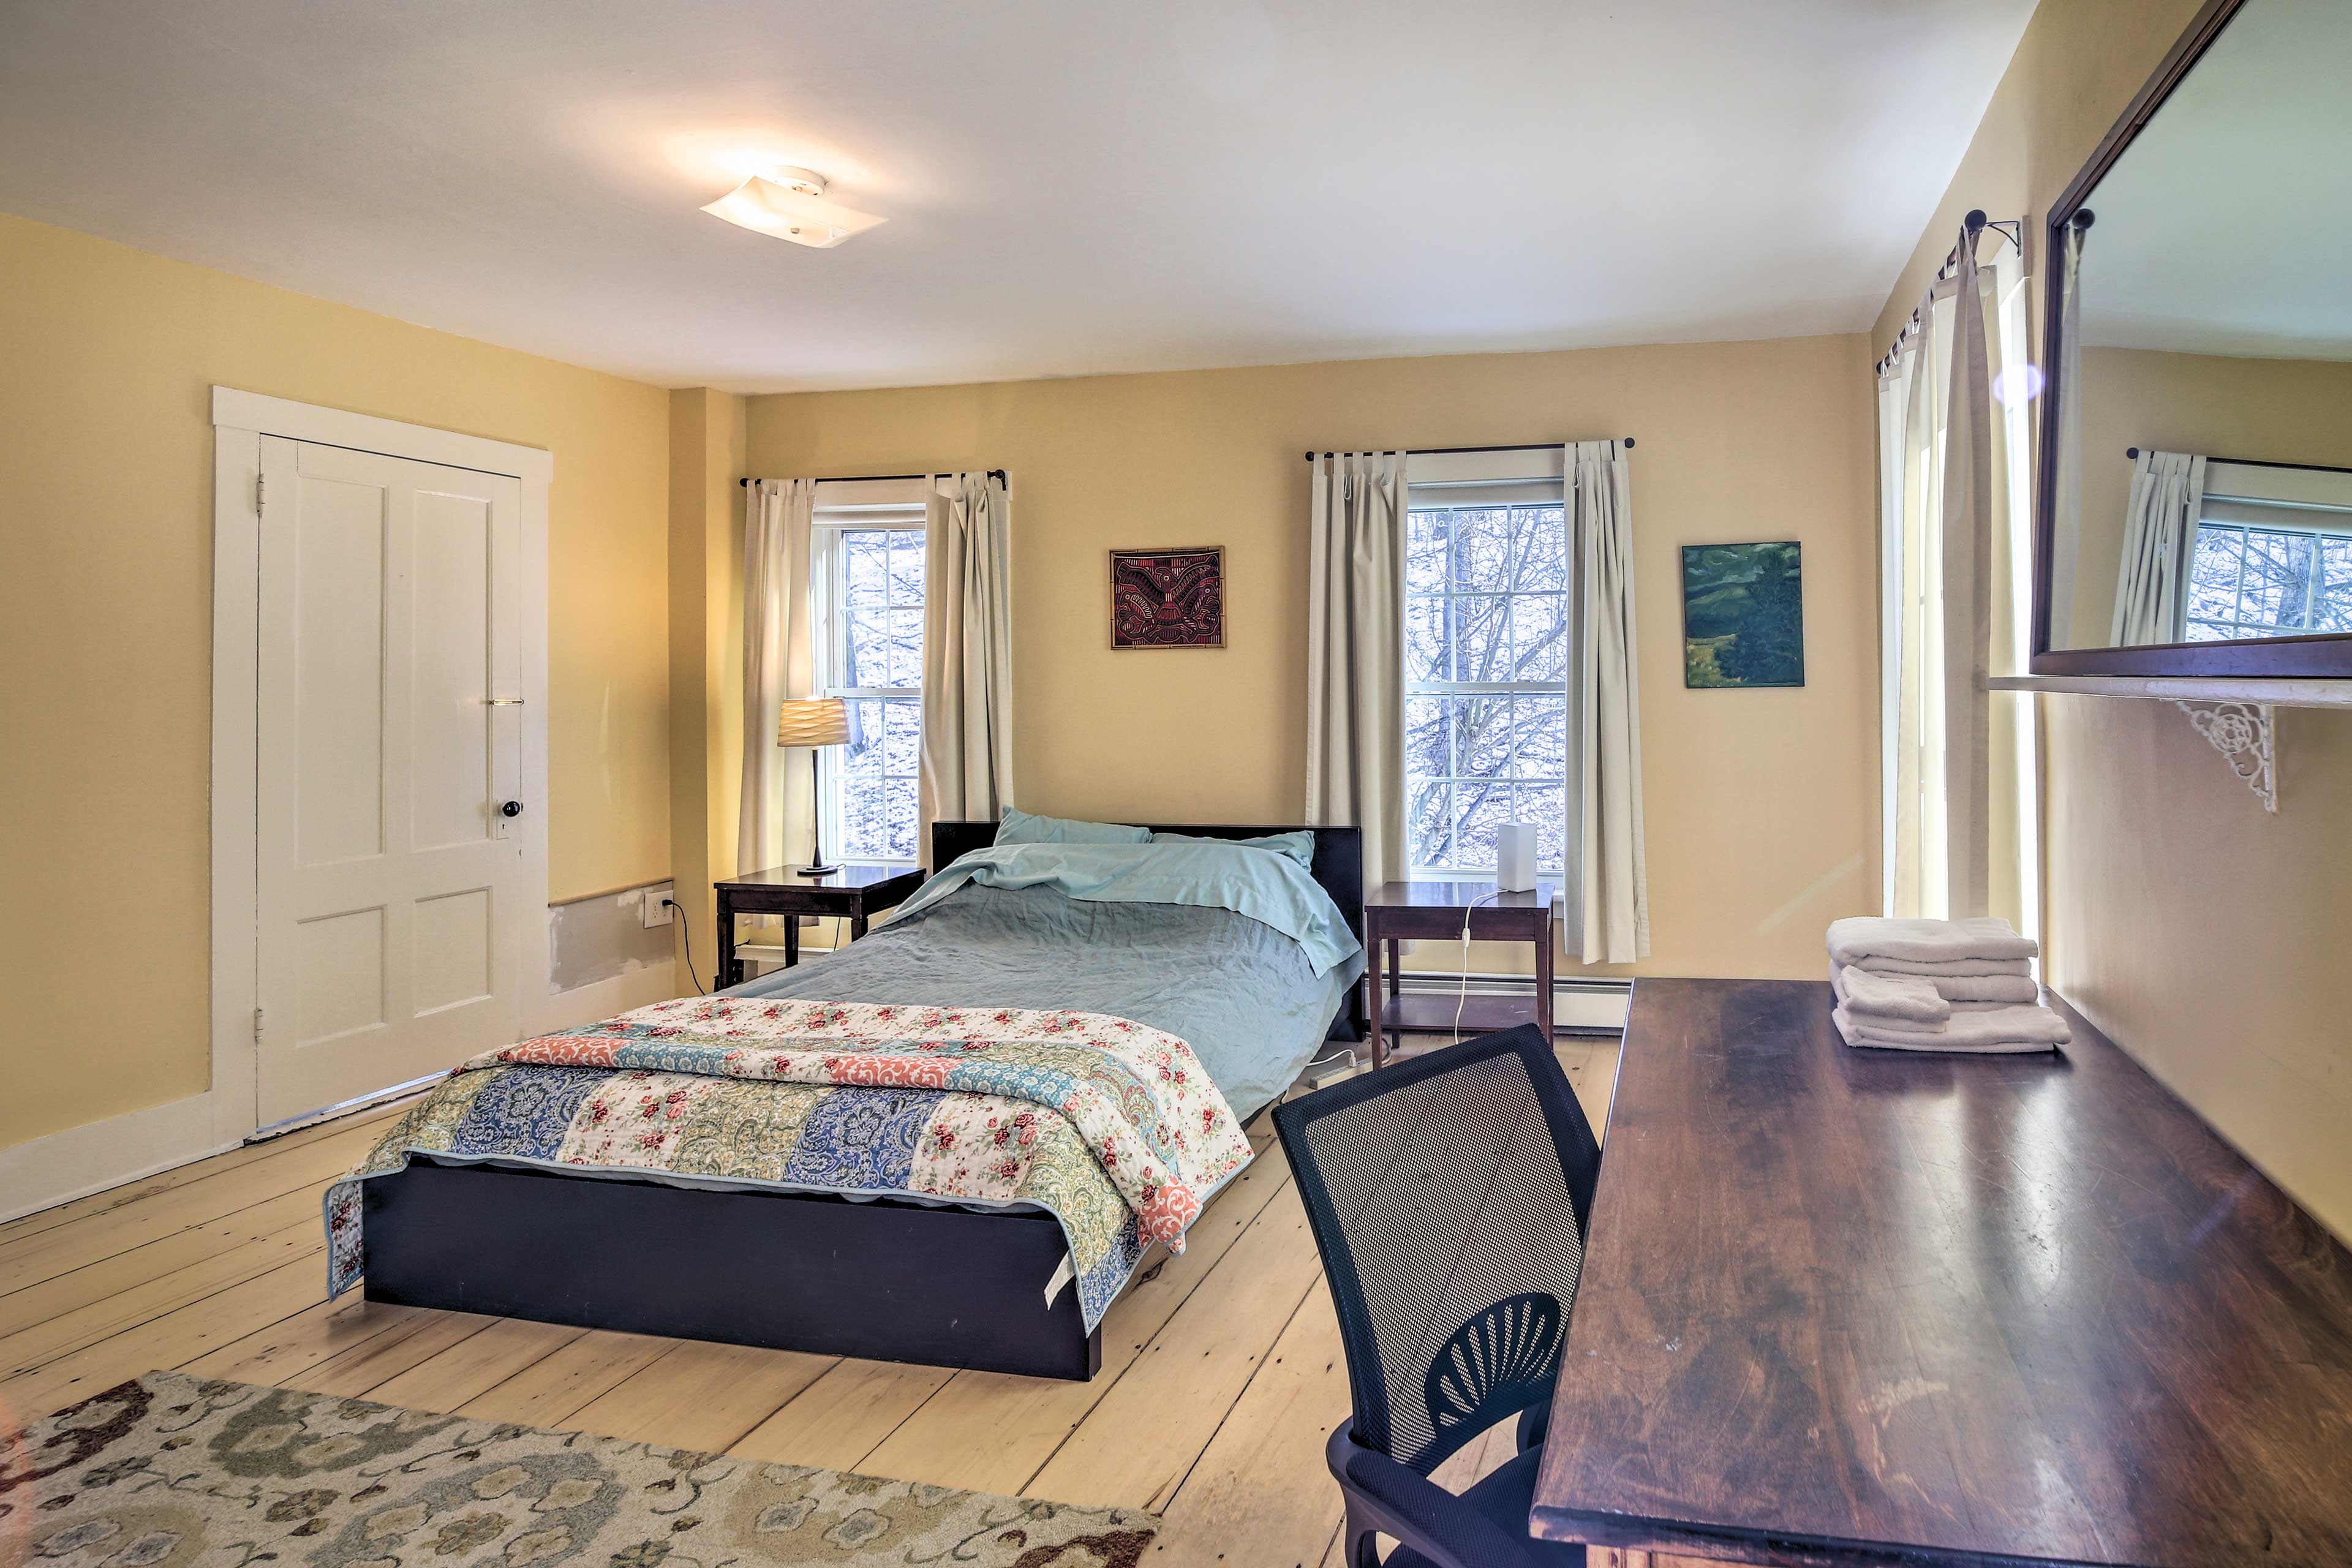 The master bedroom hosts a queen bed and desk.